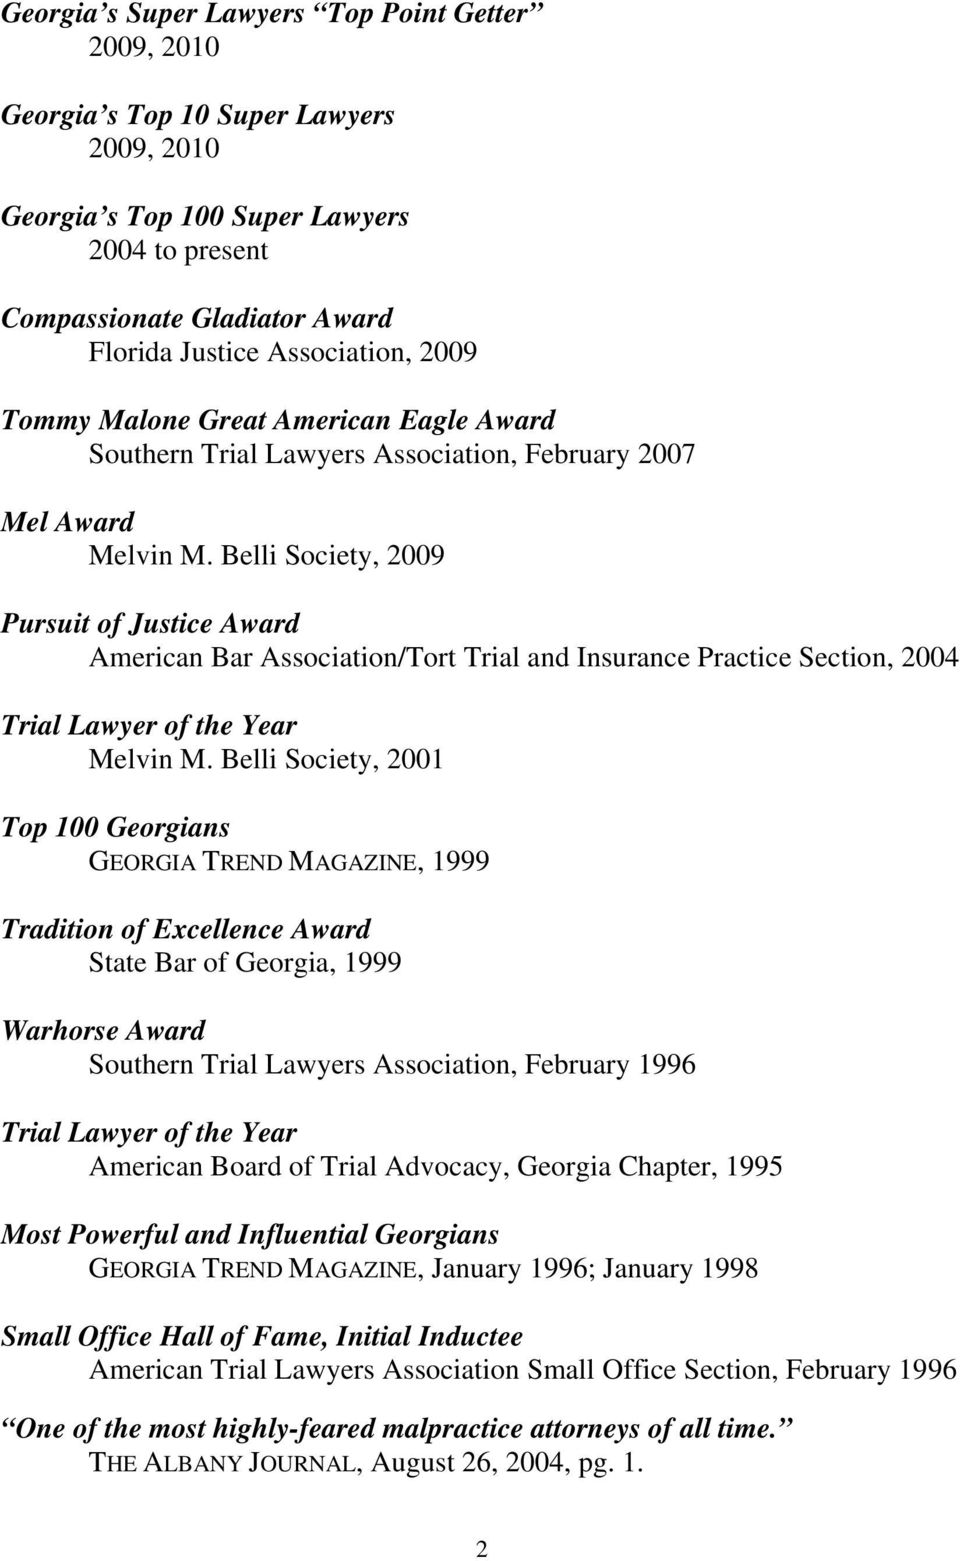 Belli Society, 2009 Pursuit of Justice Award American Bar Association/Tort Trial and Insurance Practice Section, 2004 Trial Lawyer of the Year Melvin M.